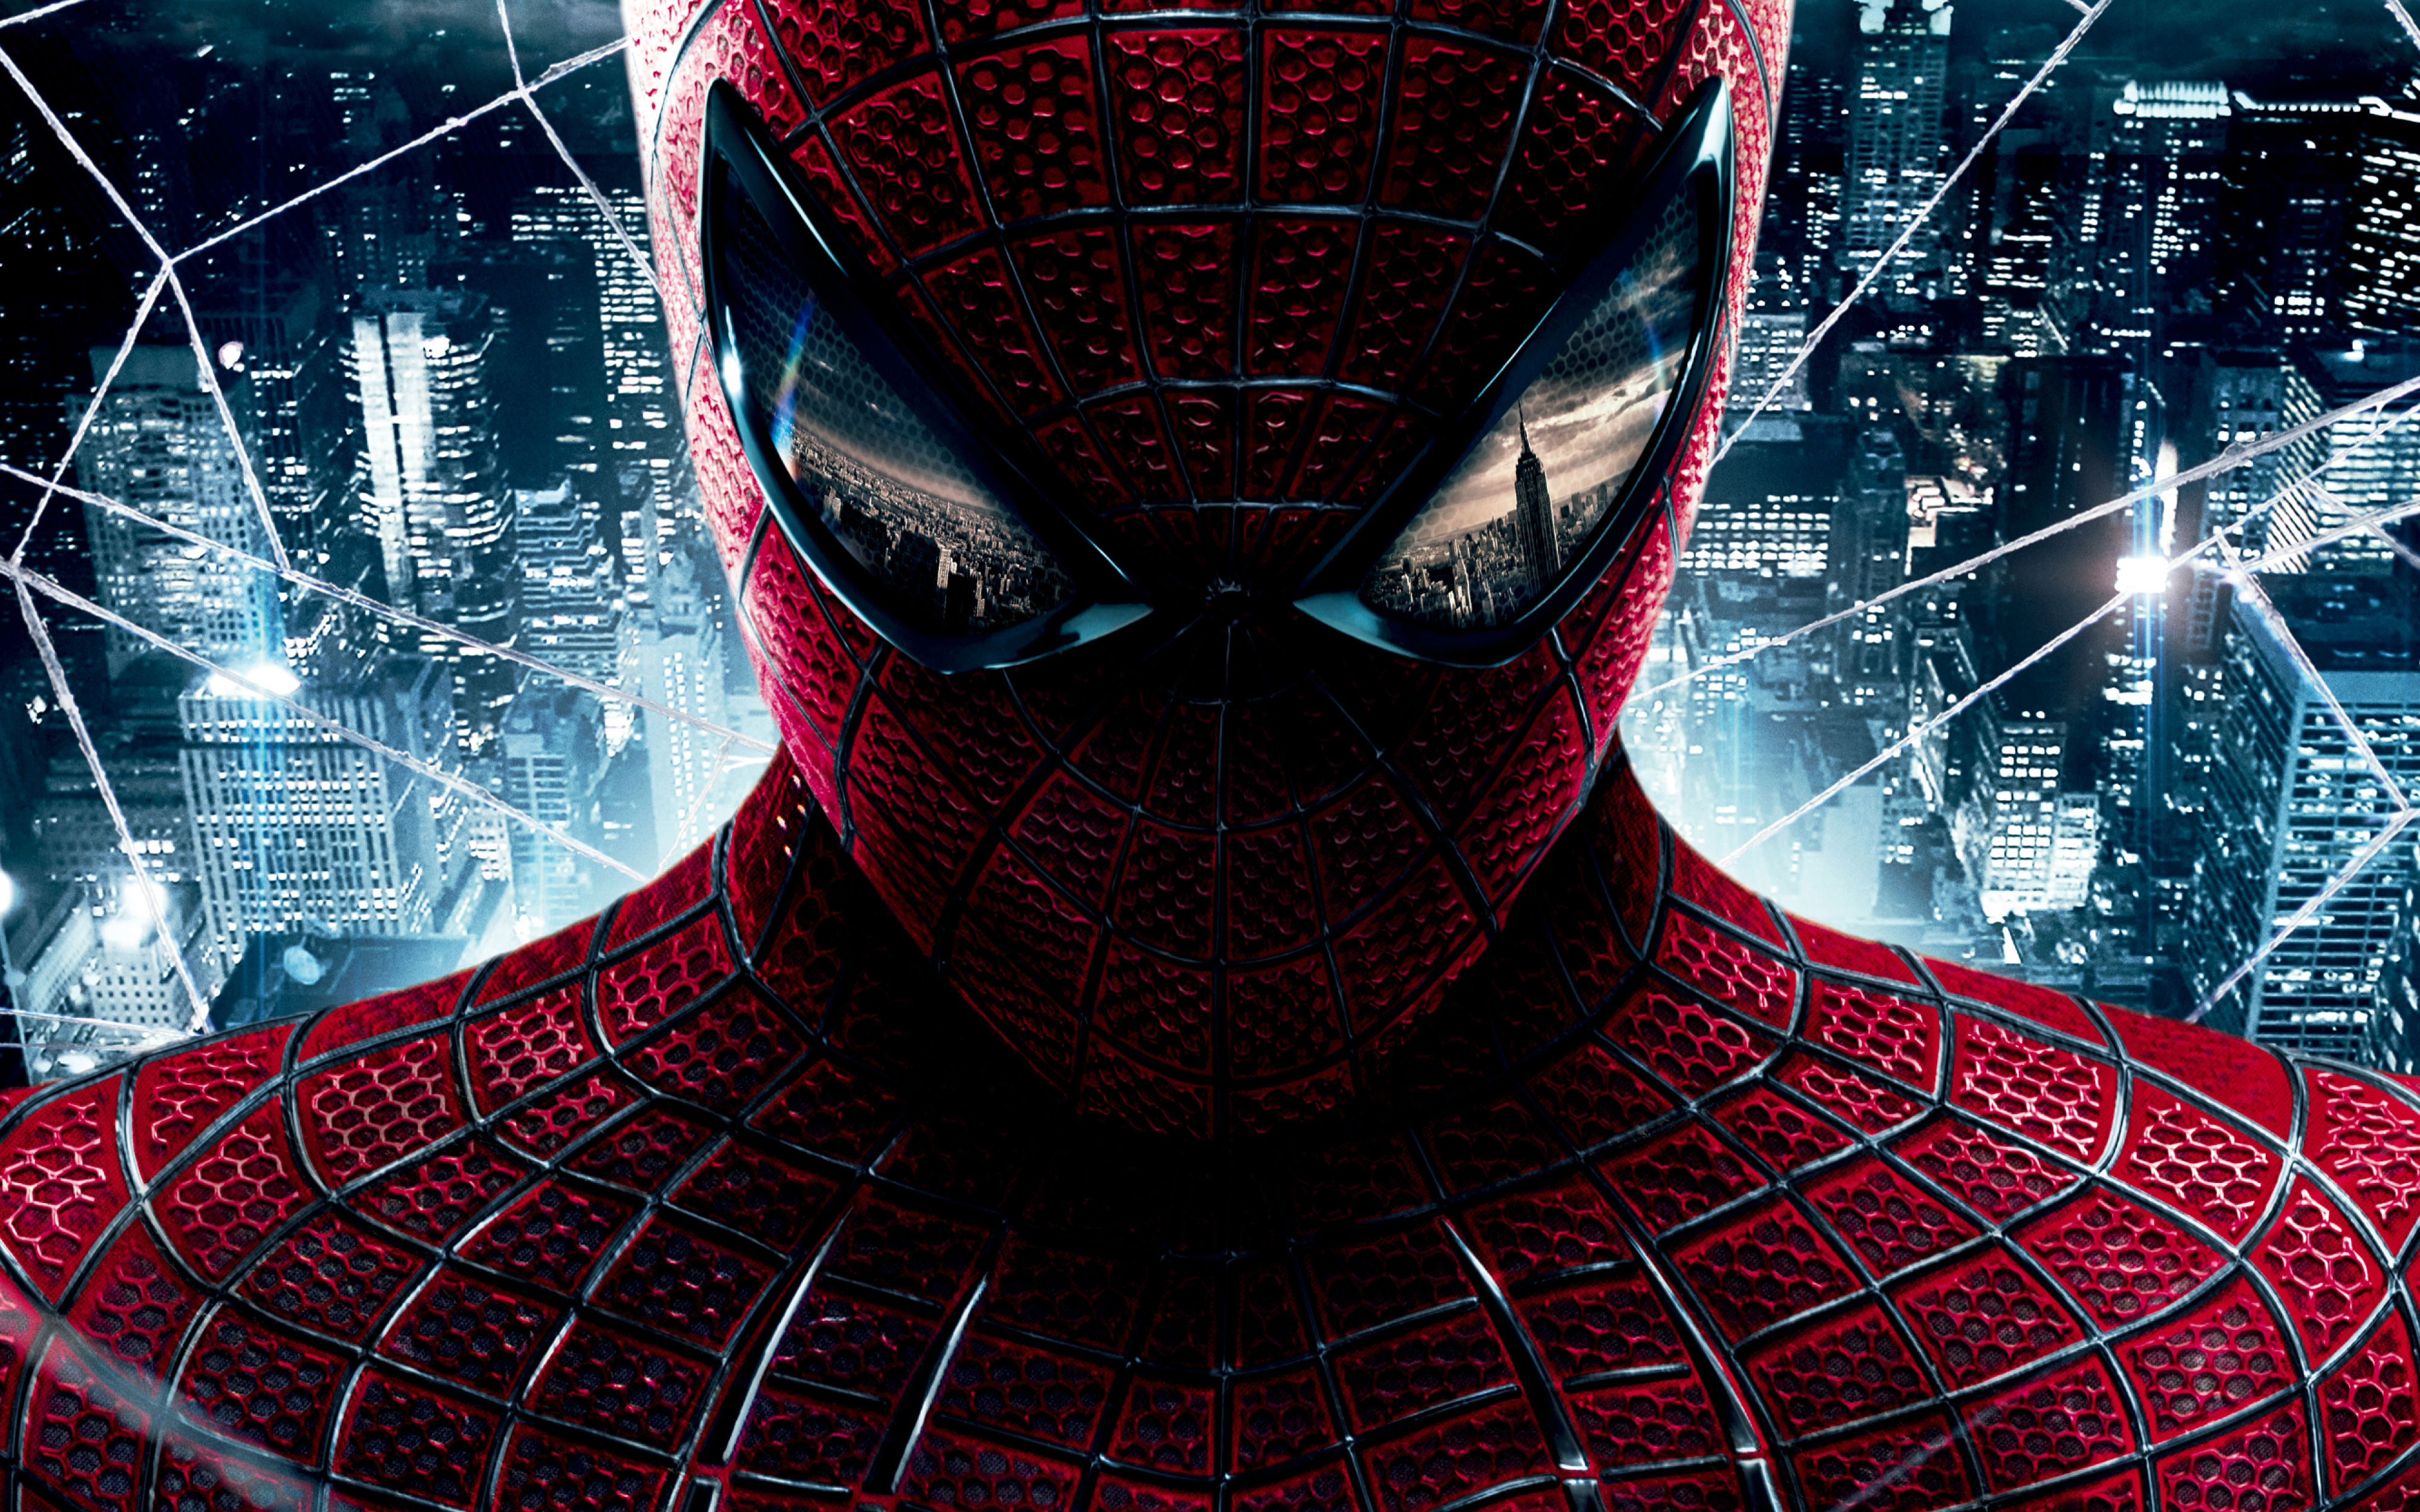 Amazing Spider-Man New 2791.14 Kb